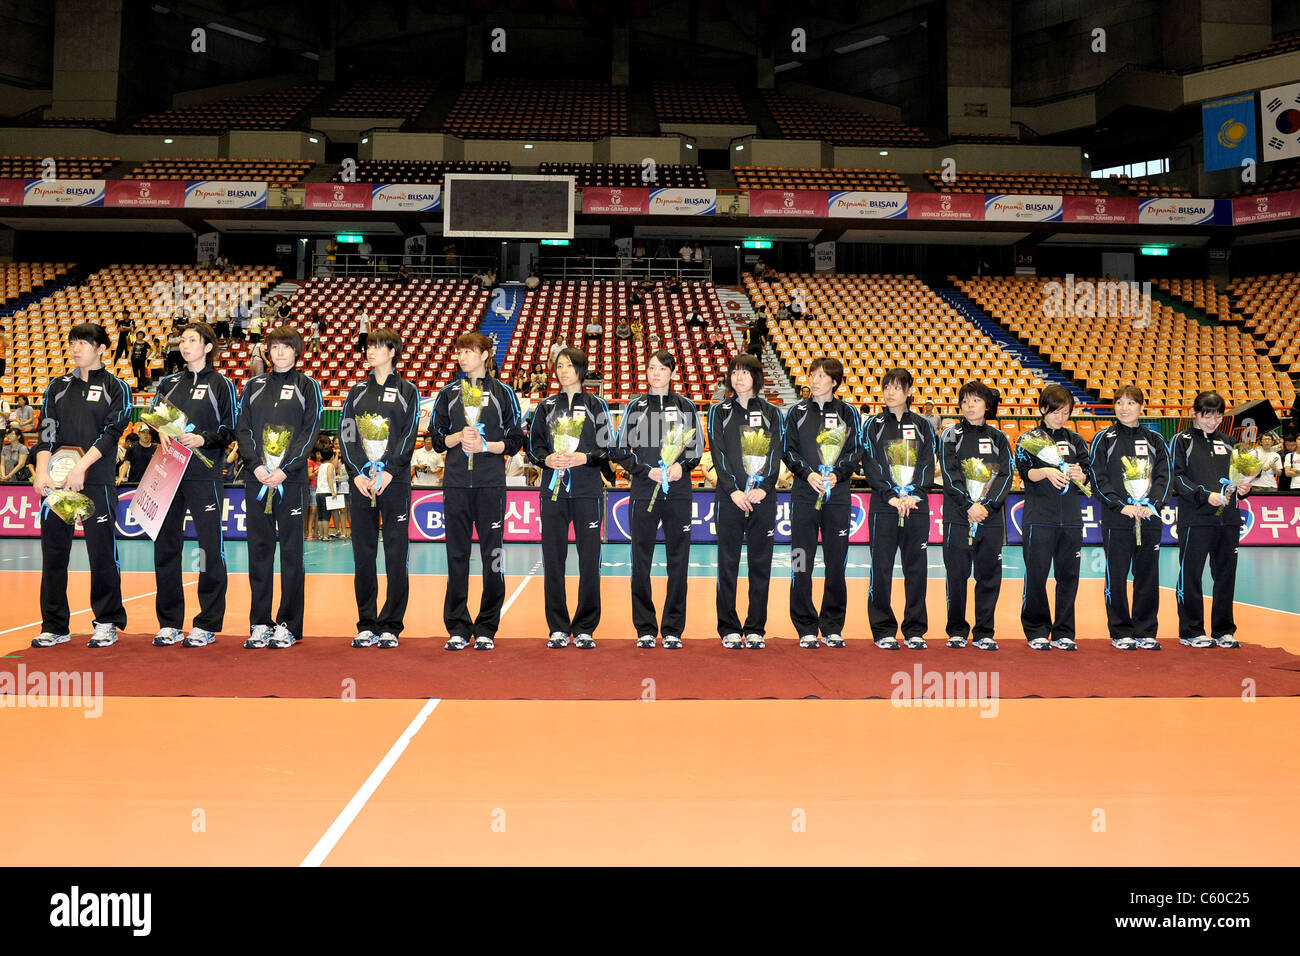 volleyball japan team players standing on the podium during the